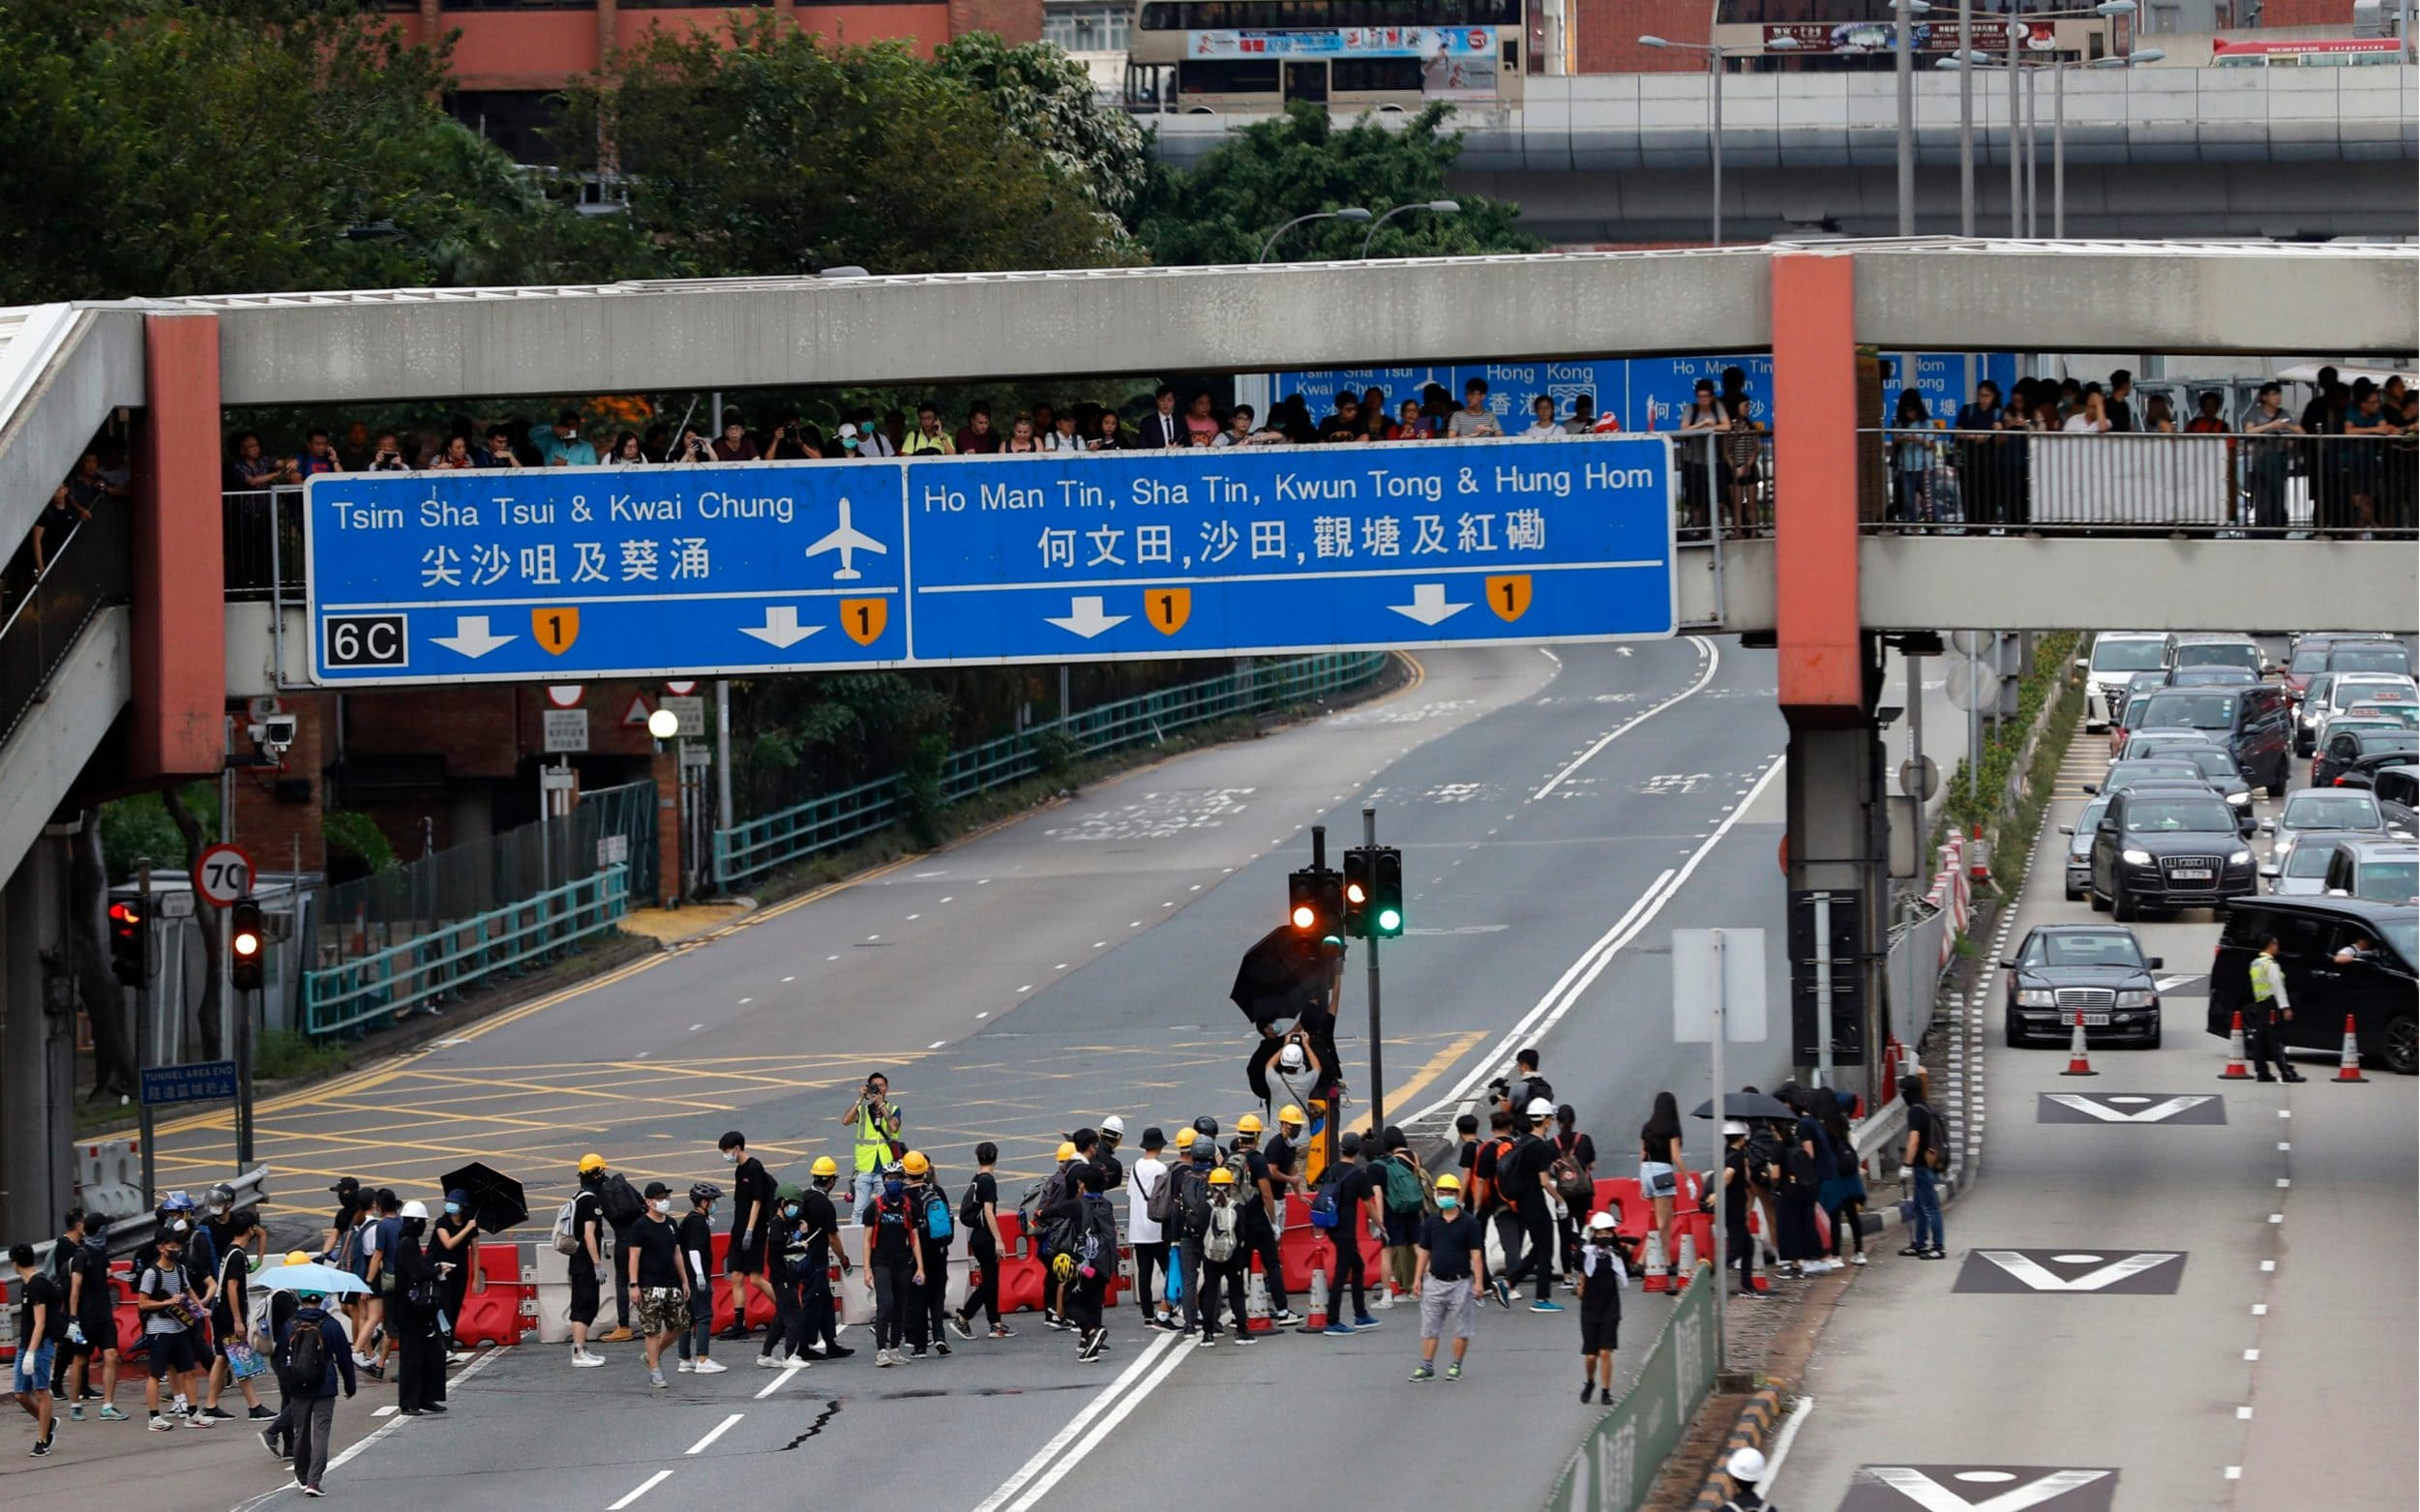 Hong Kong protesters block tunnel as marches continue in defiance of Beijing